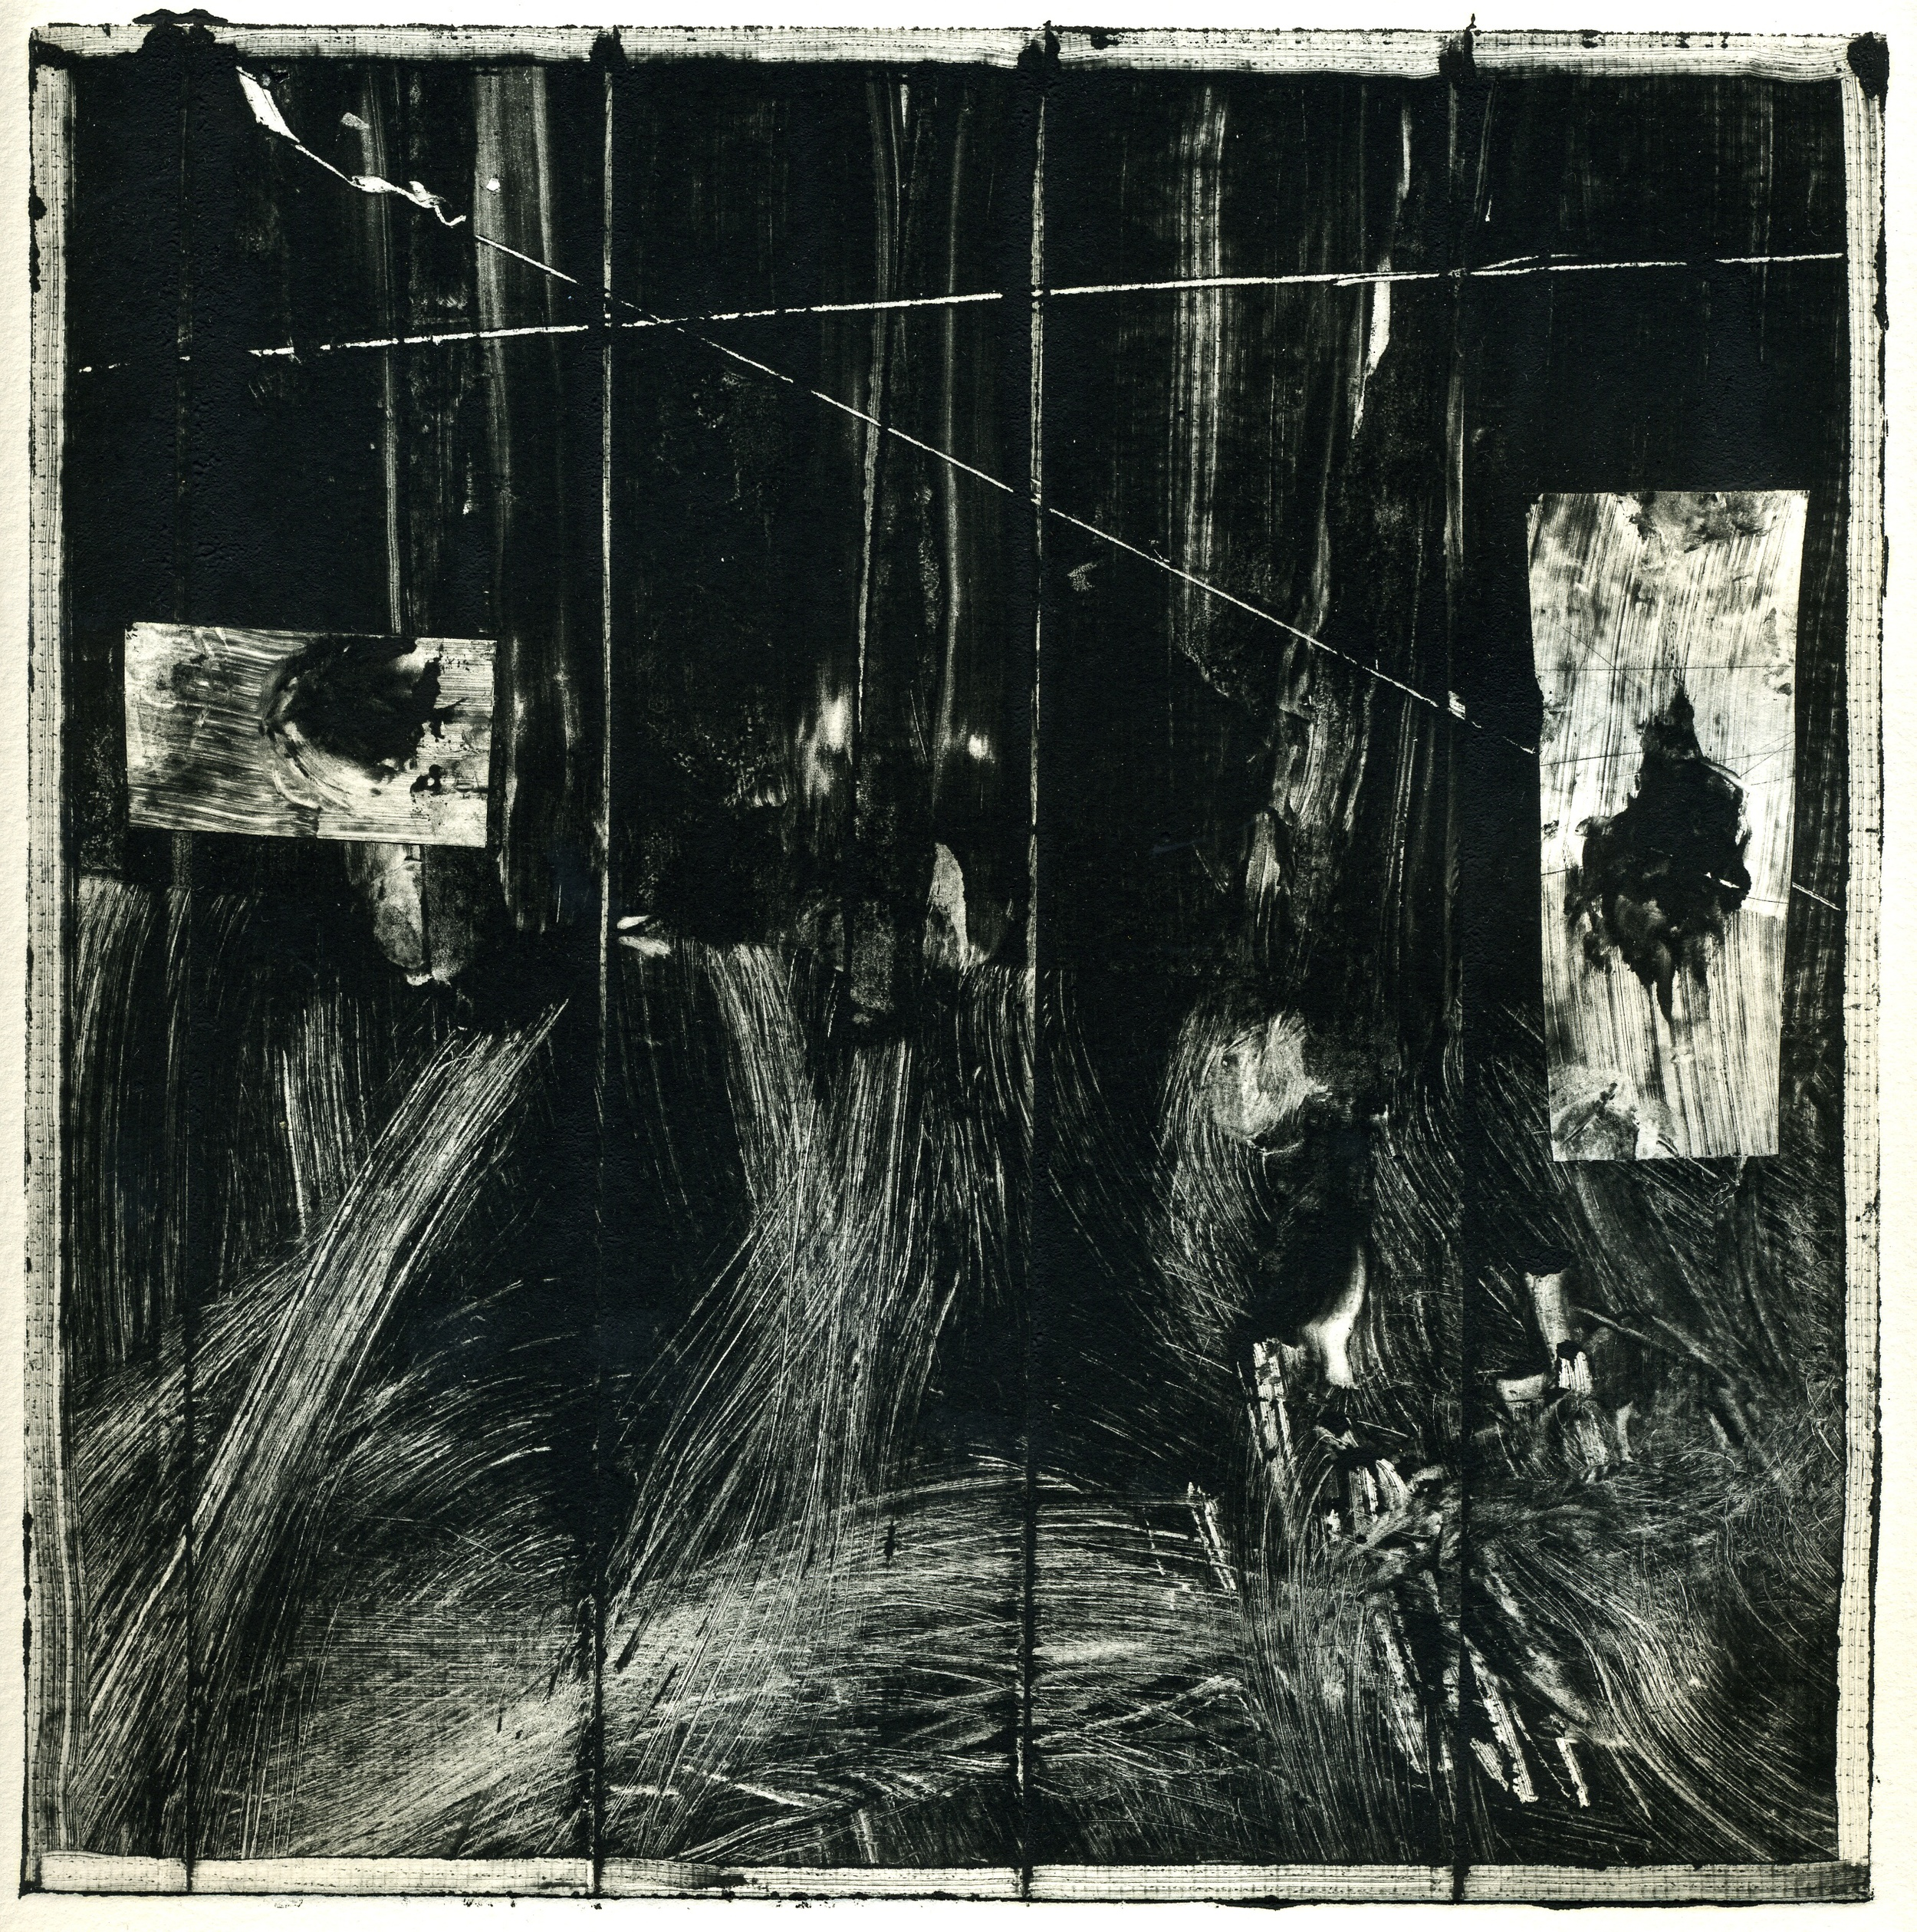 A monotype print by Clive Knights from his Lunigiana series studying his sabatacle in Lunigiana